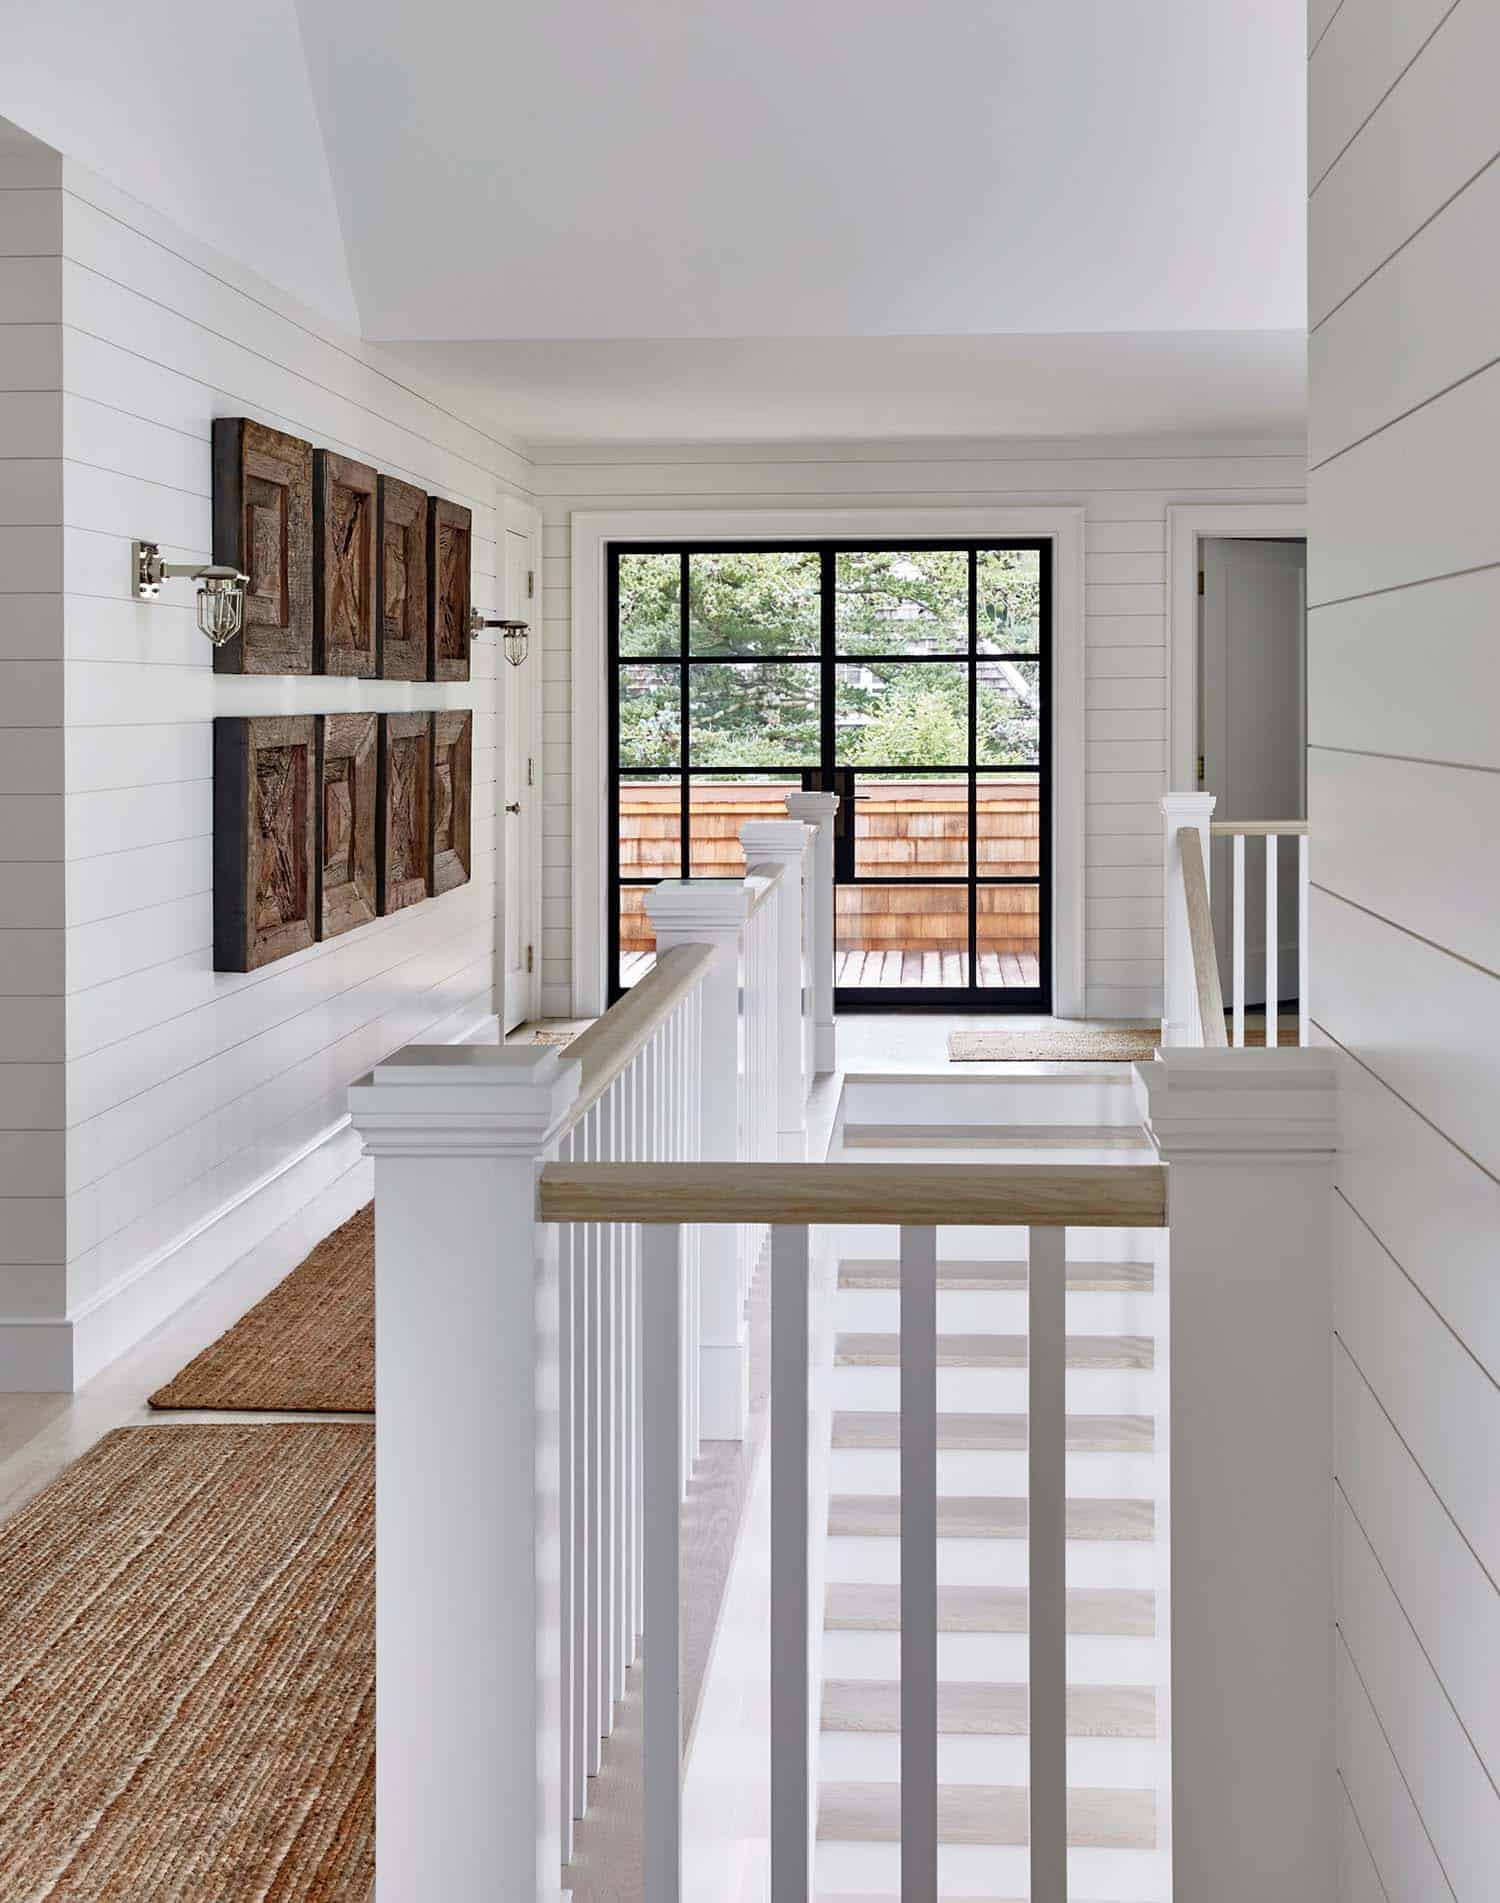 Amagansett Beach House-Chango-Co-16-1 Kindesign